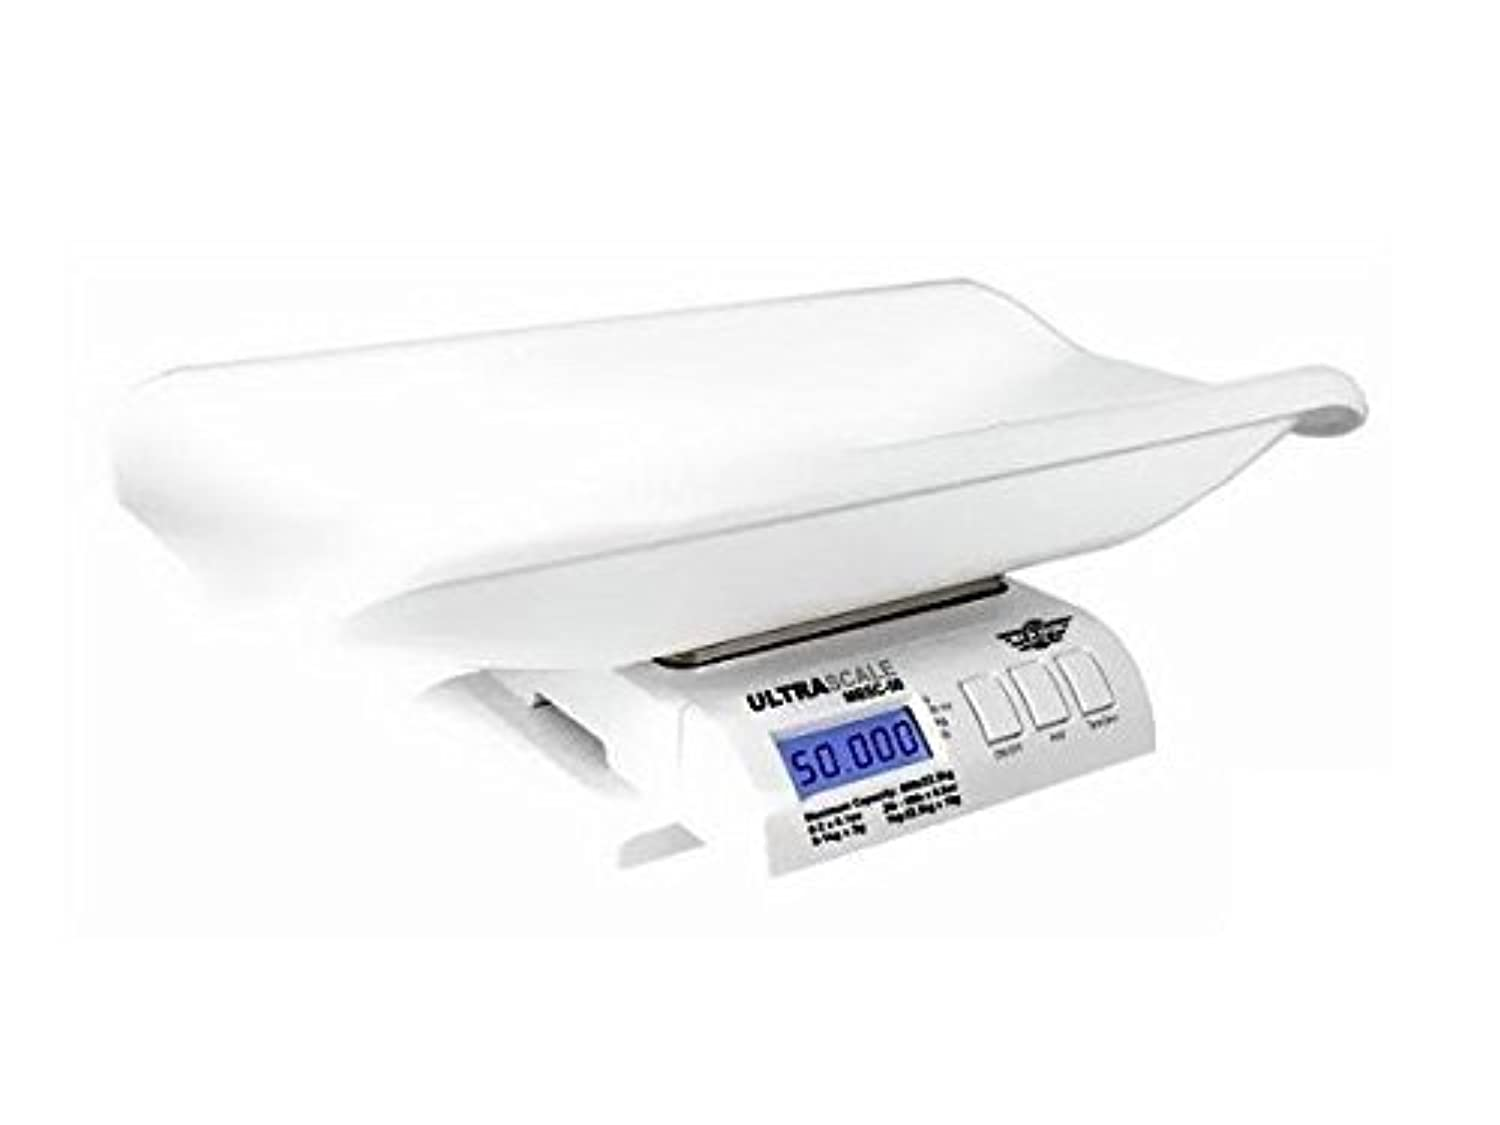 Ultrascale Mbsc Ultra U2 60lb Digital Baby Pet Scale with USB by My Weigh [並行輸入品]